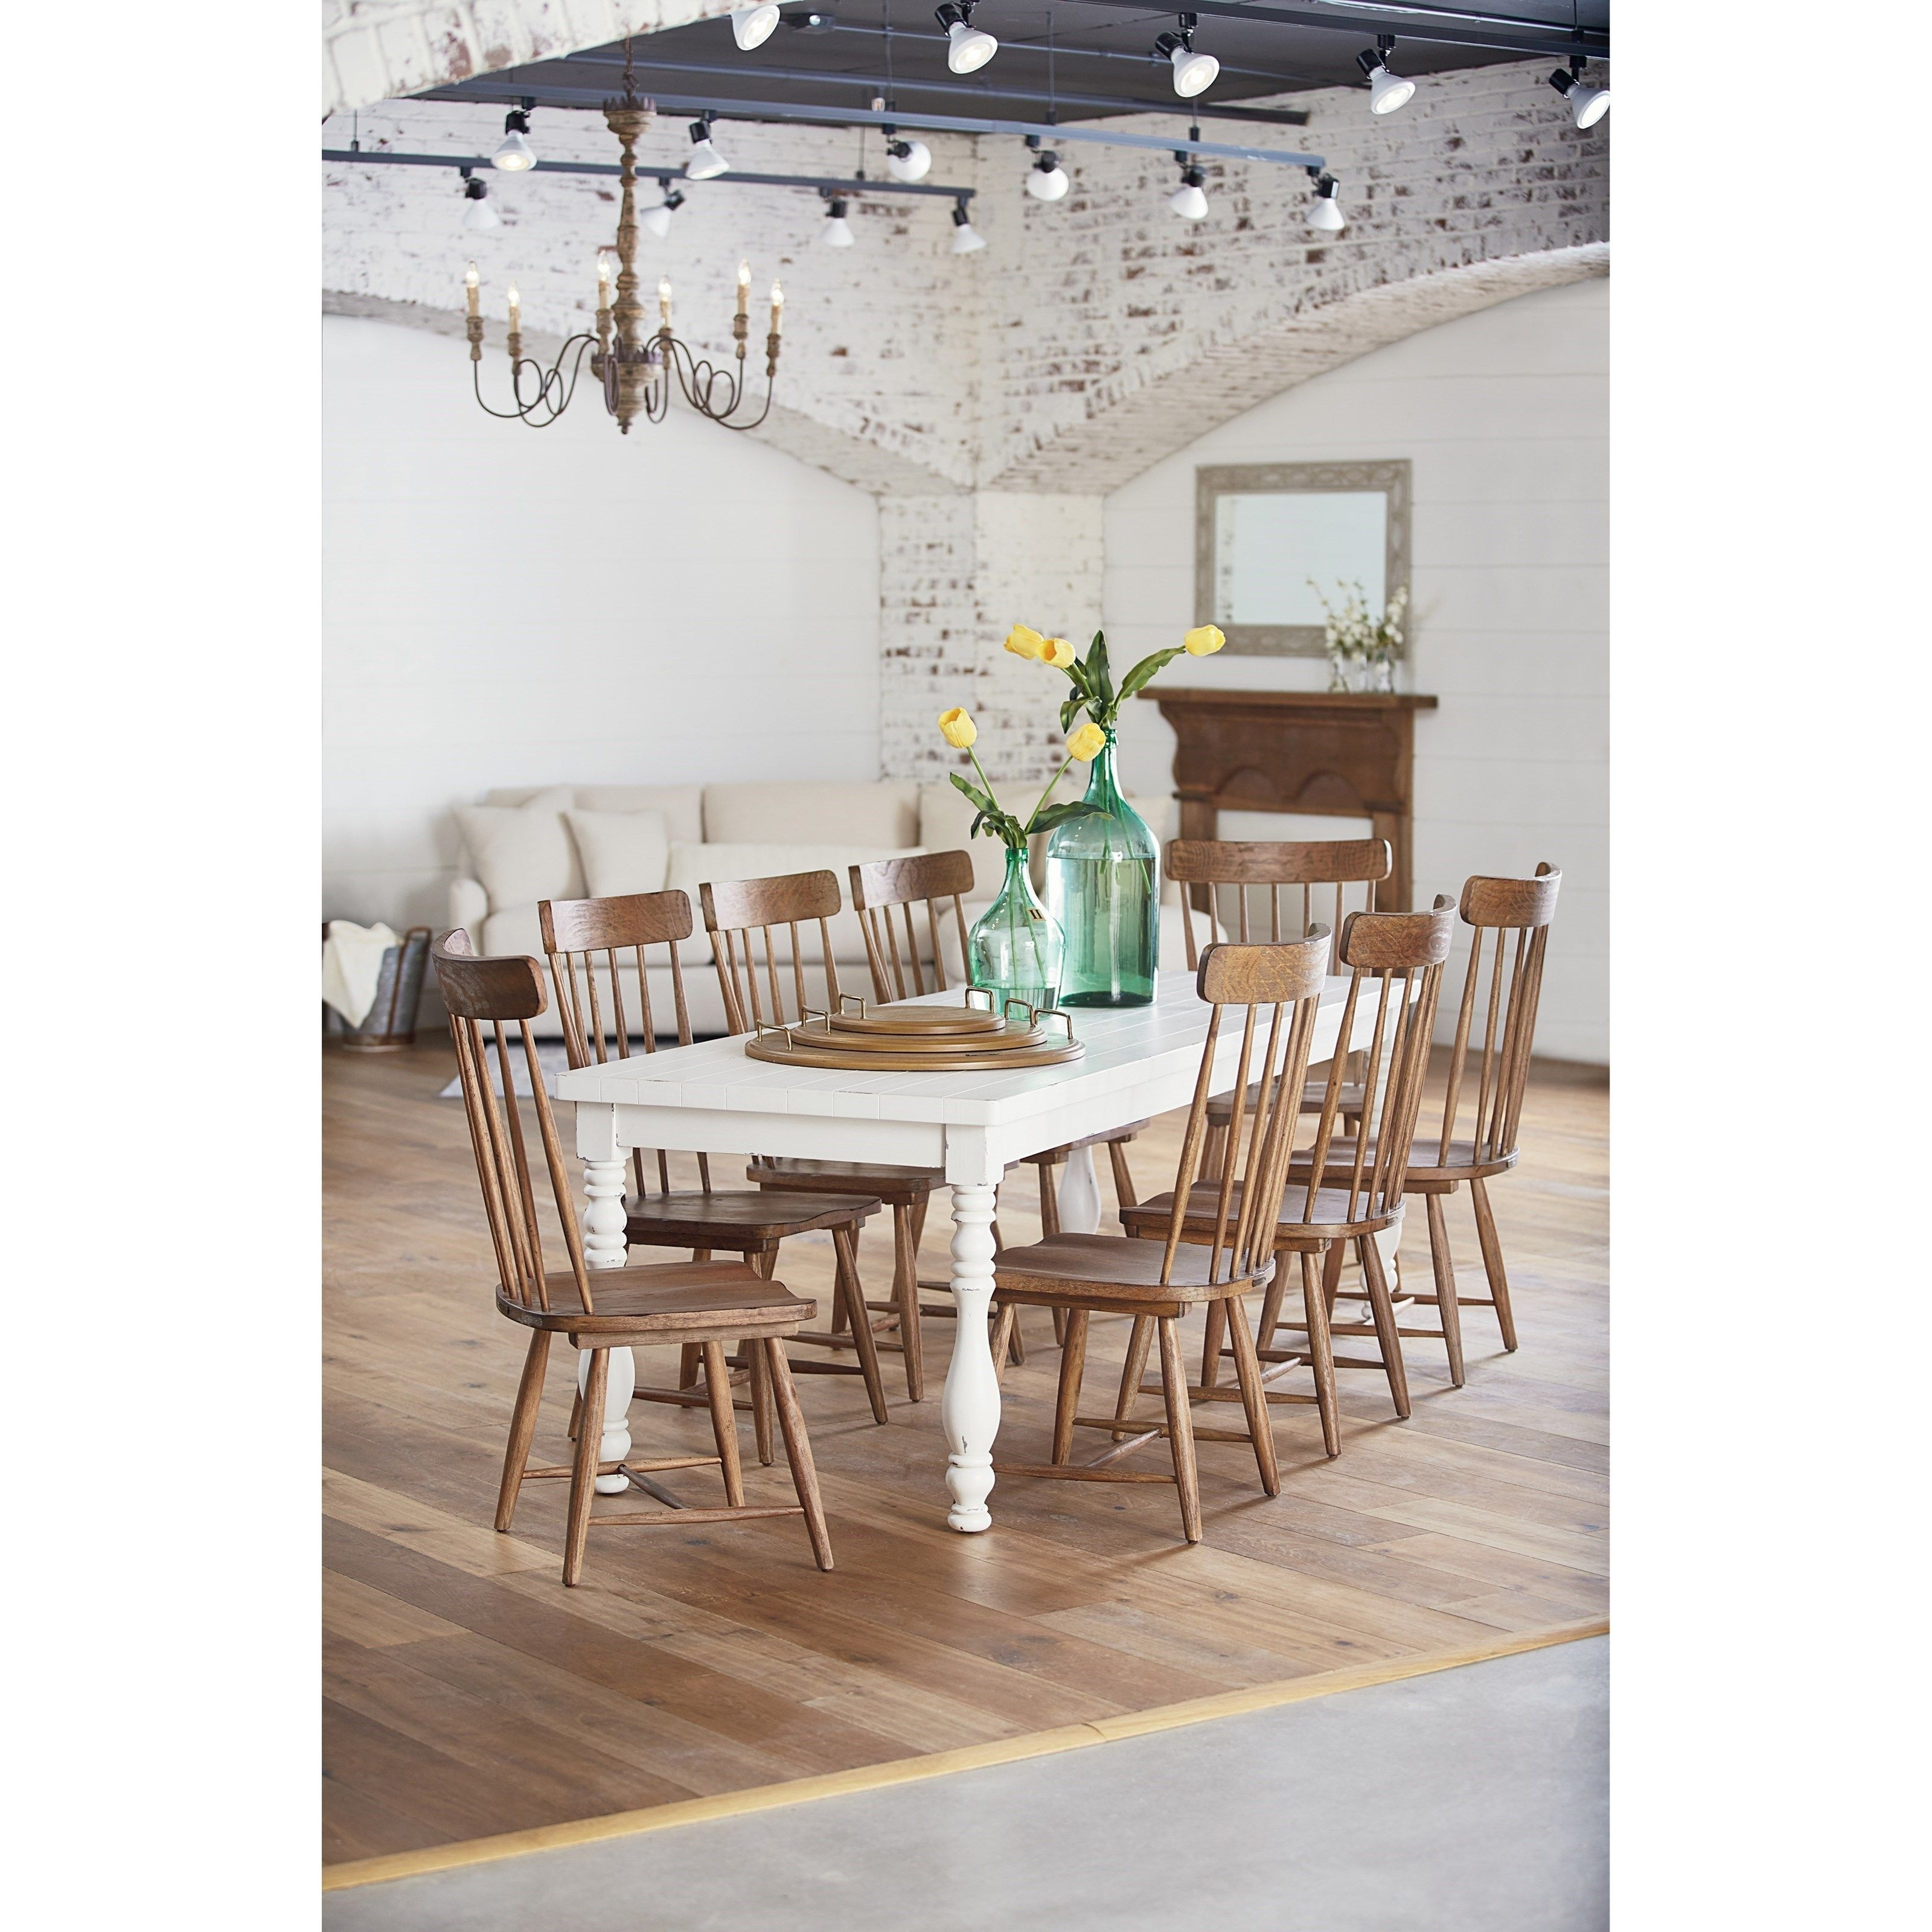 9 Piece Dining Setmagnolia Home | Decor | Pinterest | Dining Inside Current Wyatt 7 Piece Dining Sets With Celler Teal Chairs (Image 5 of 20)